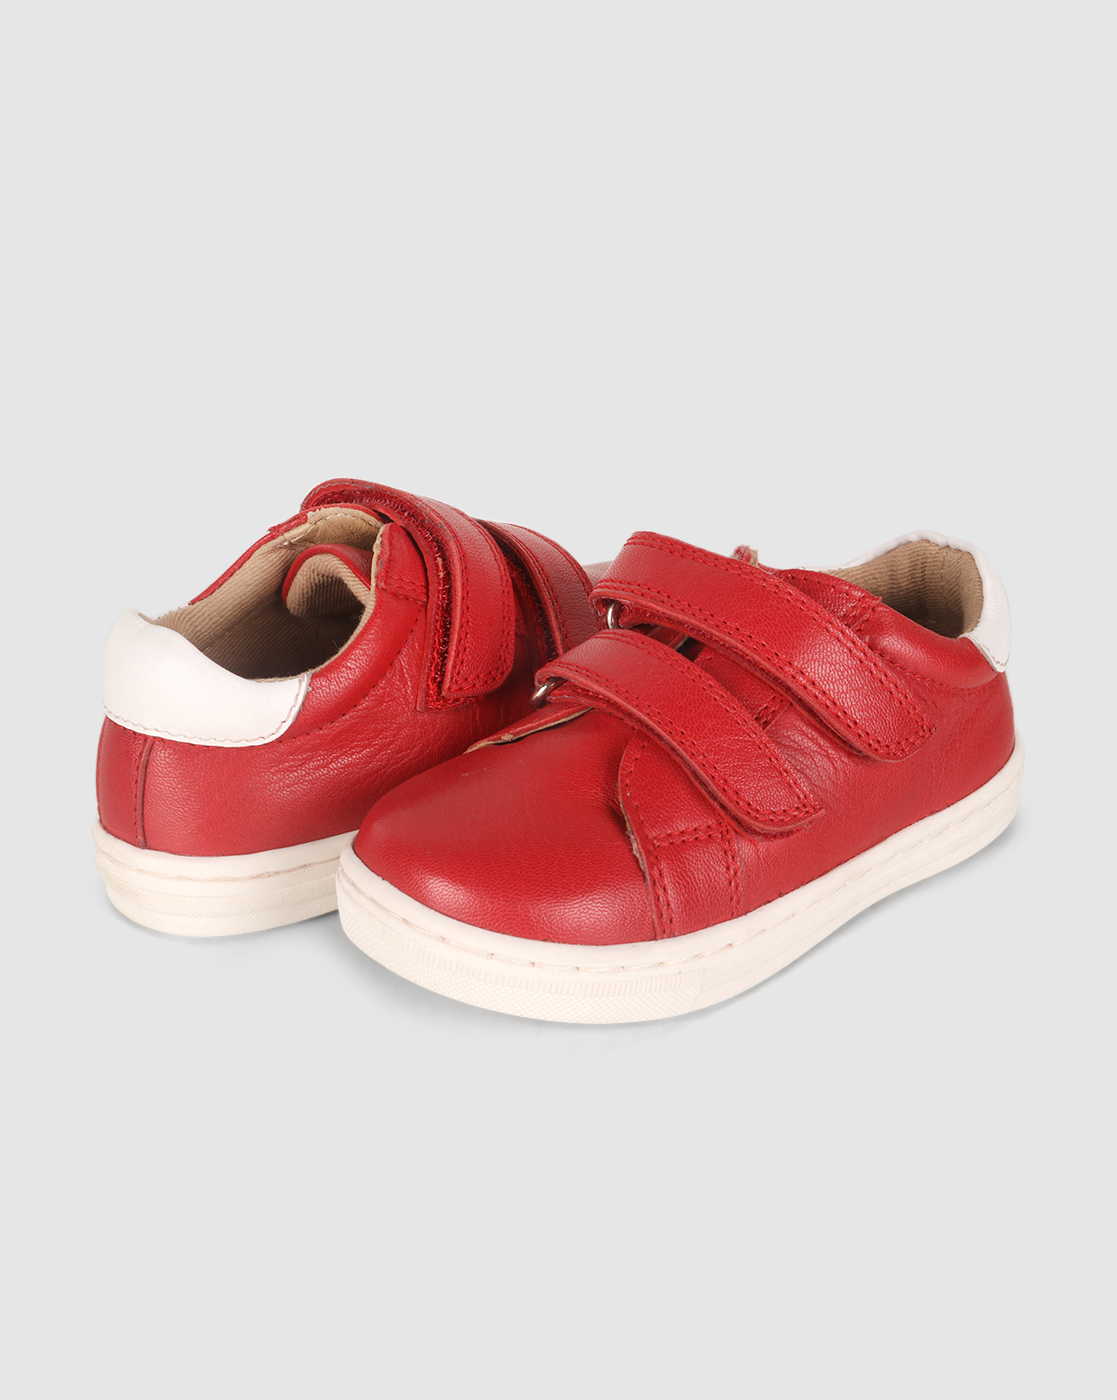 Mothercare | Unisex First Walker Shoes Two Strap Velcro Opening - Red